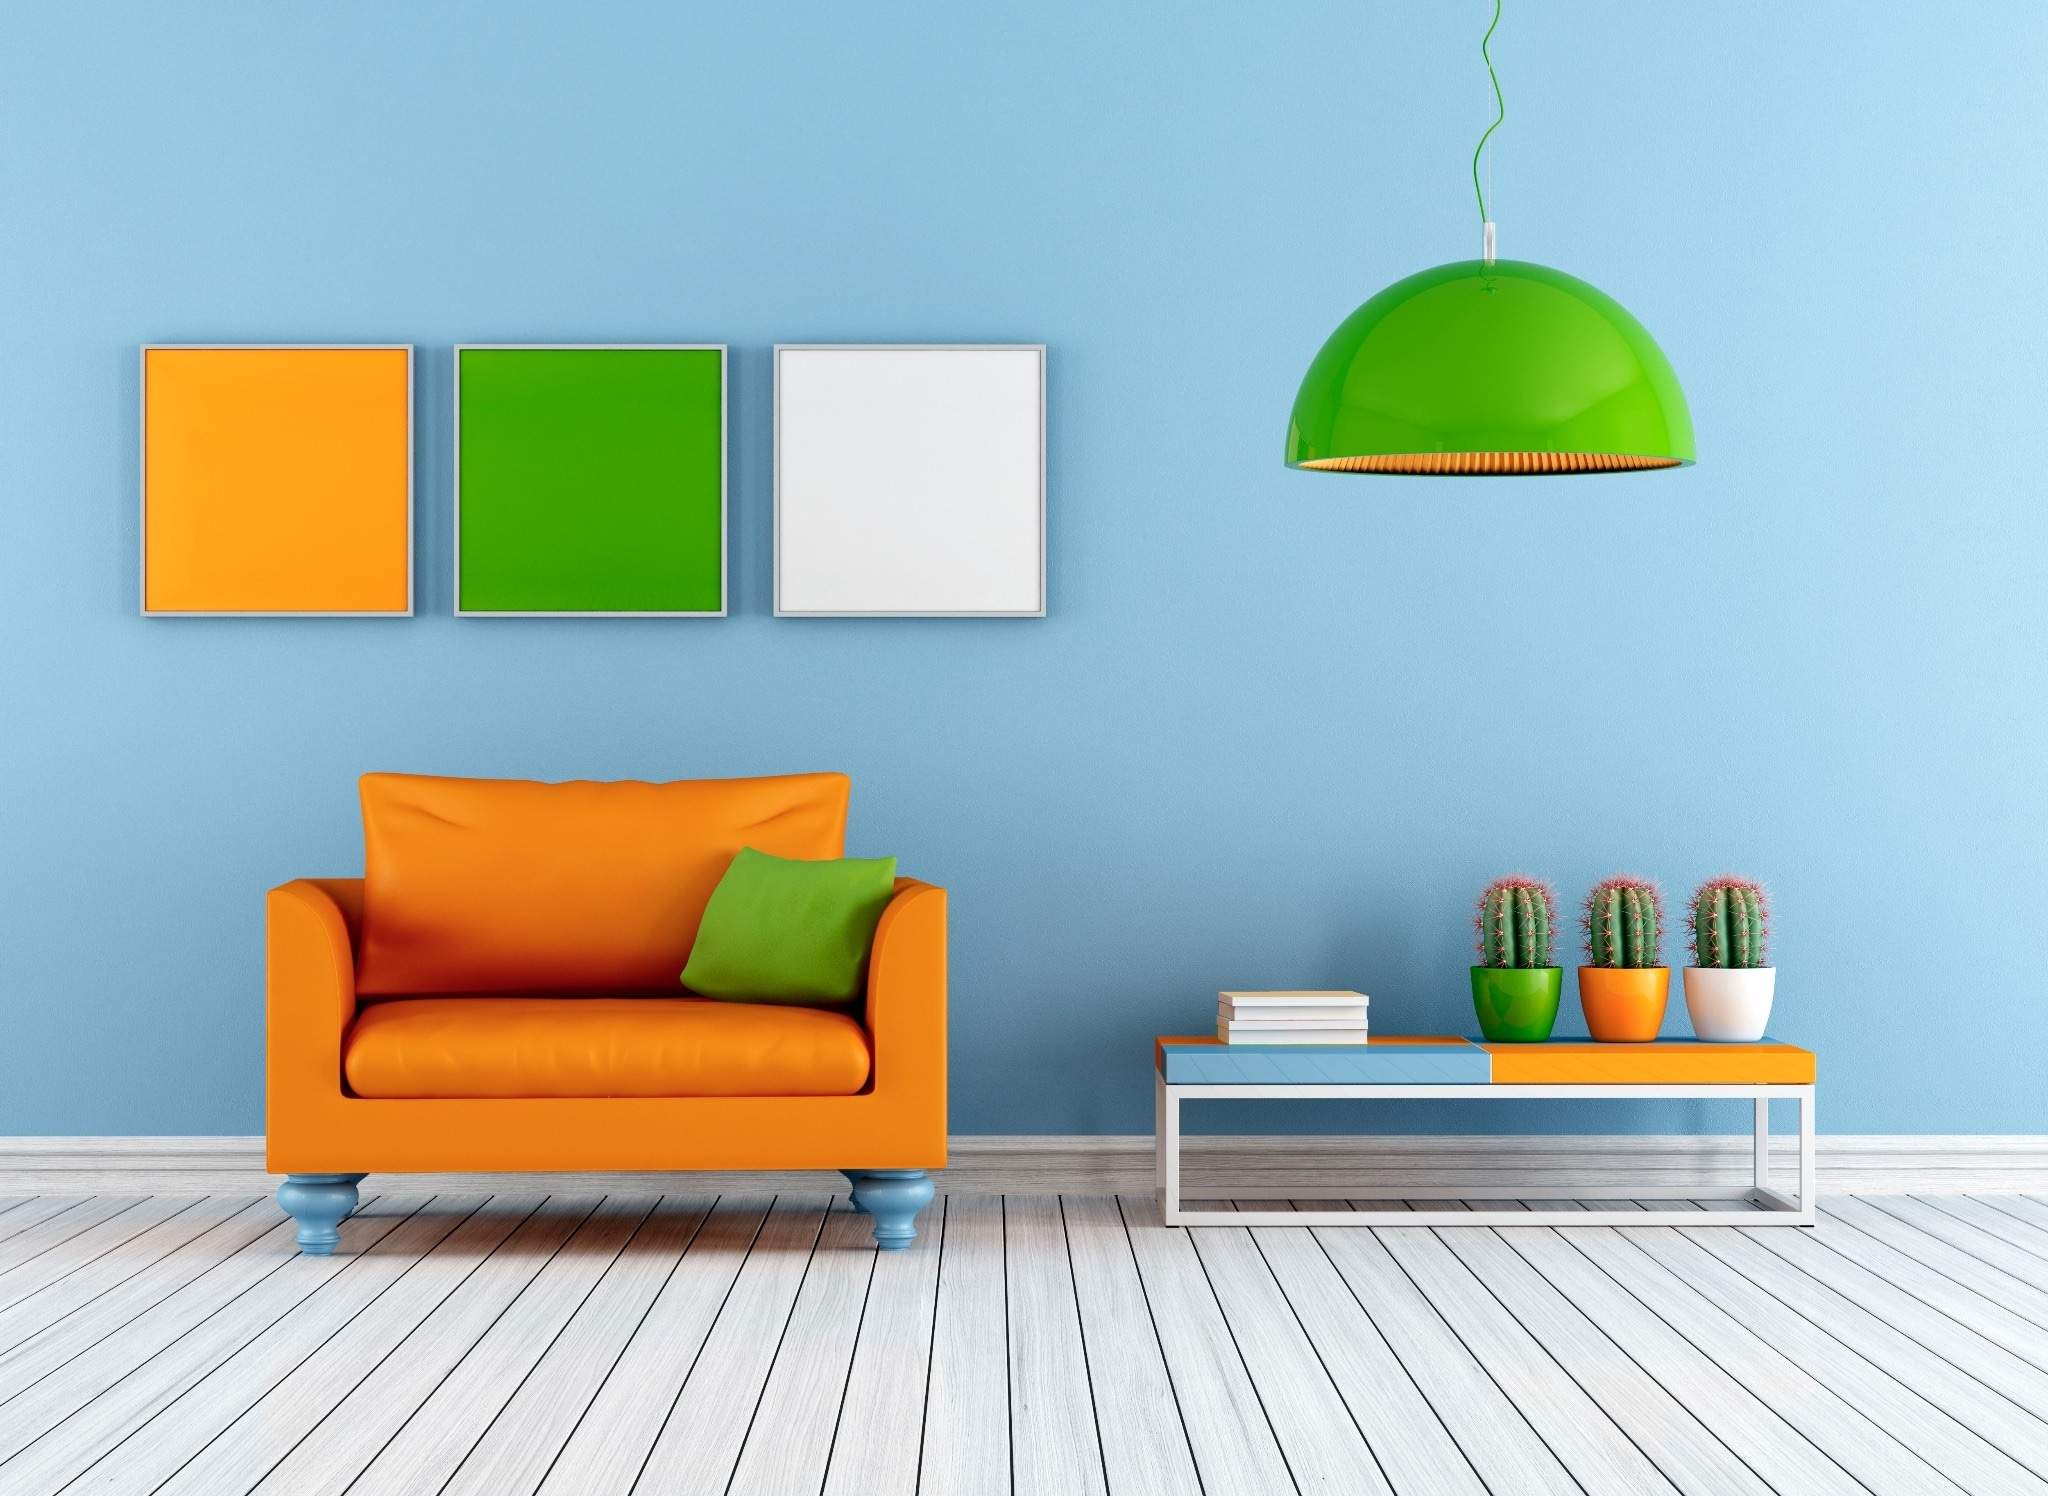 8 Tips for Saving Money on Home Decorations